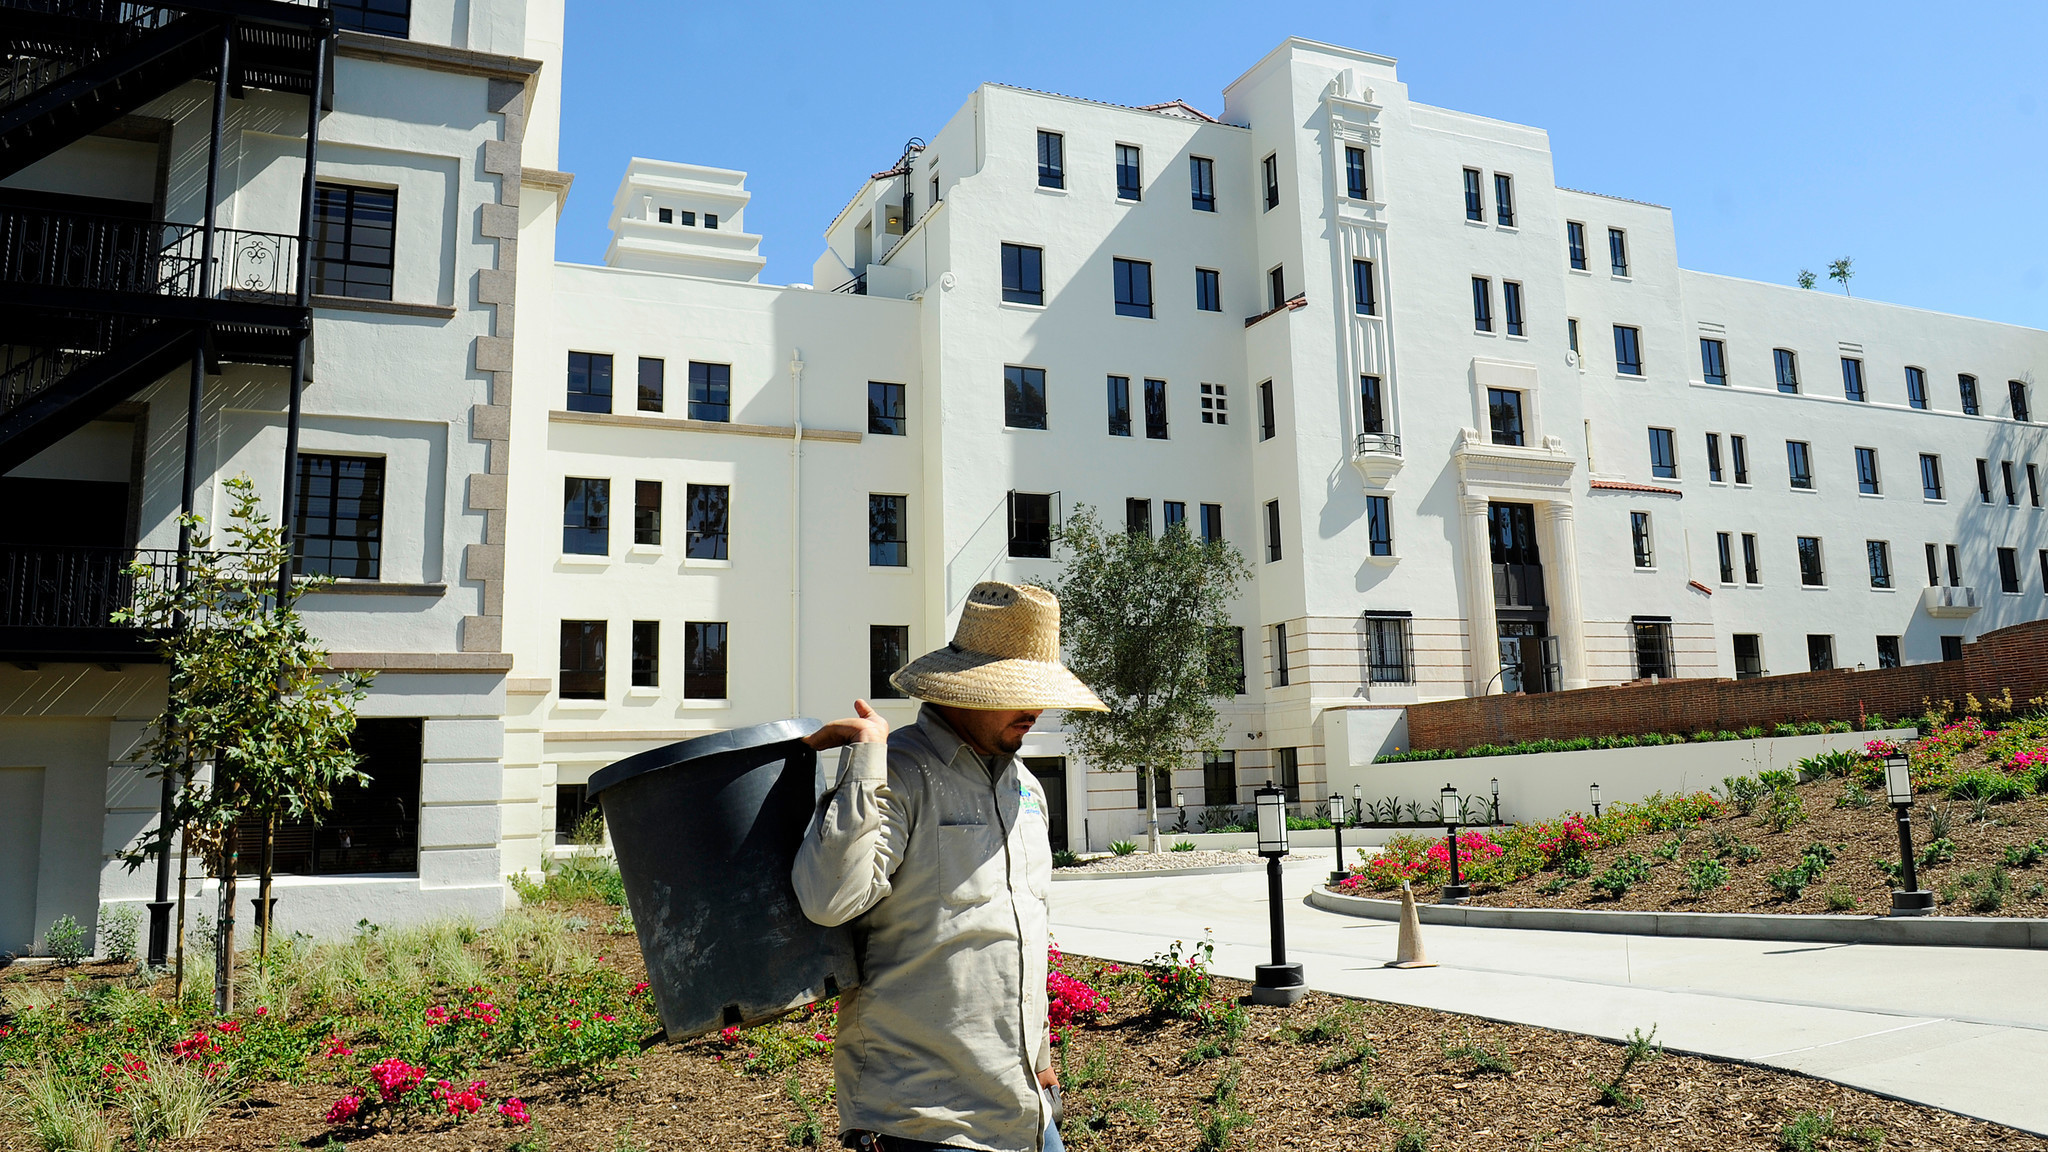 A gardener works in the yard at the former Linda Vista Hospital that is now affordable housing. (Christina House / For The Times)